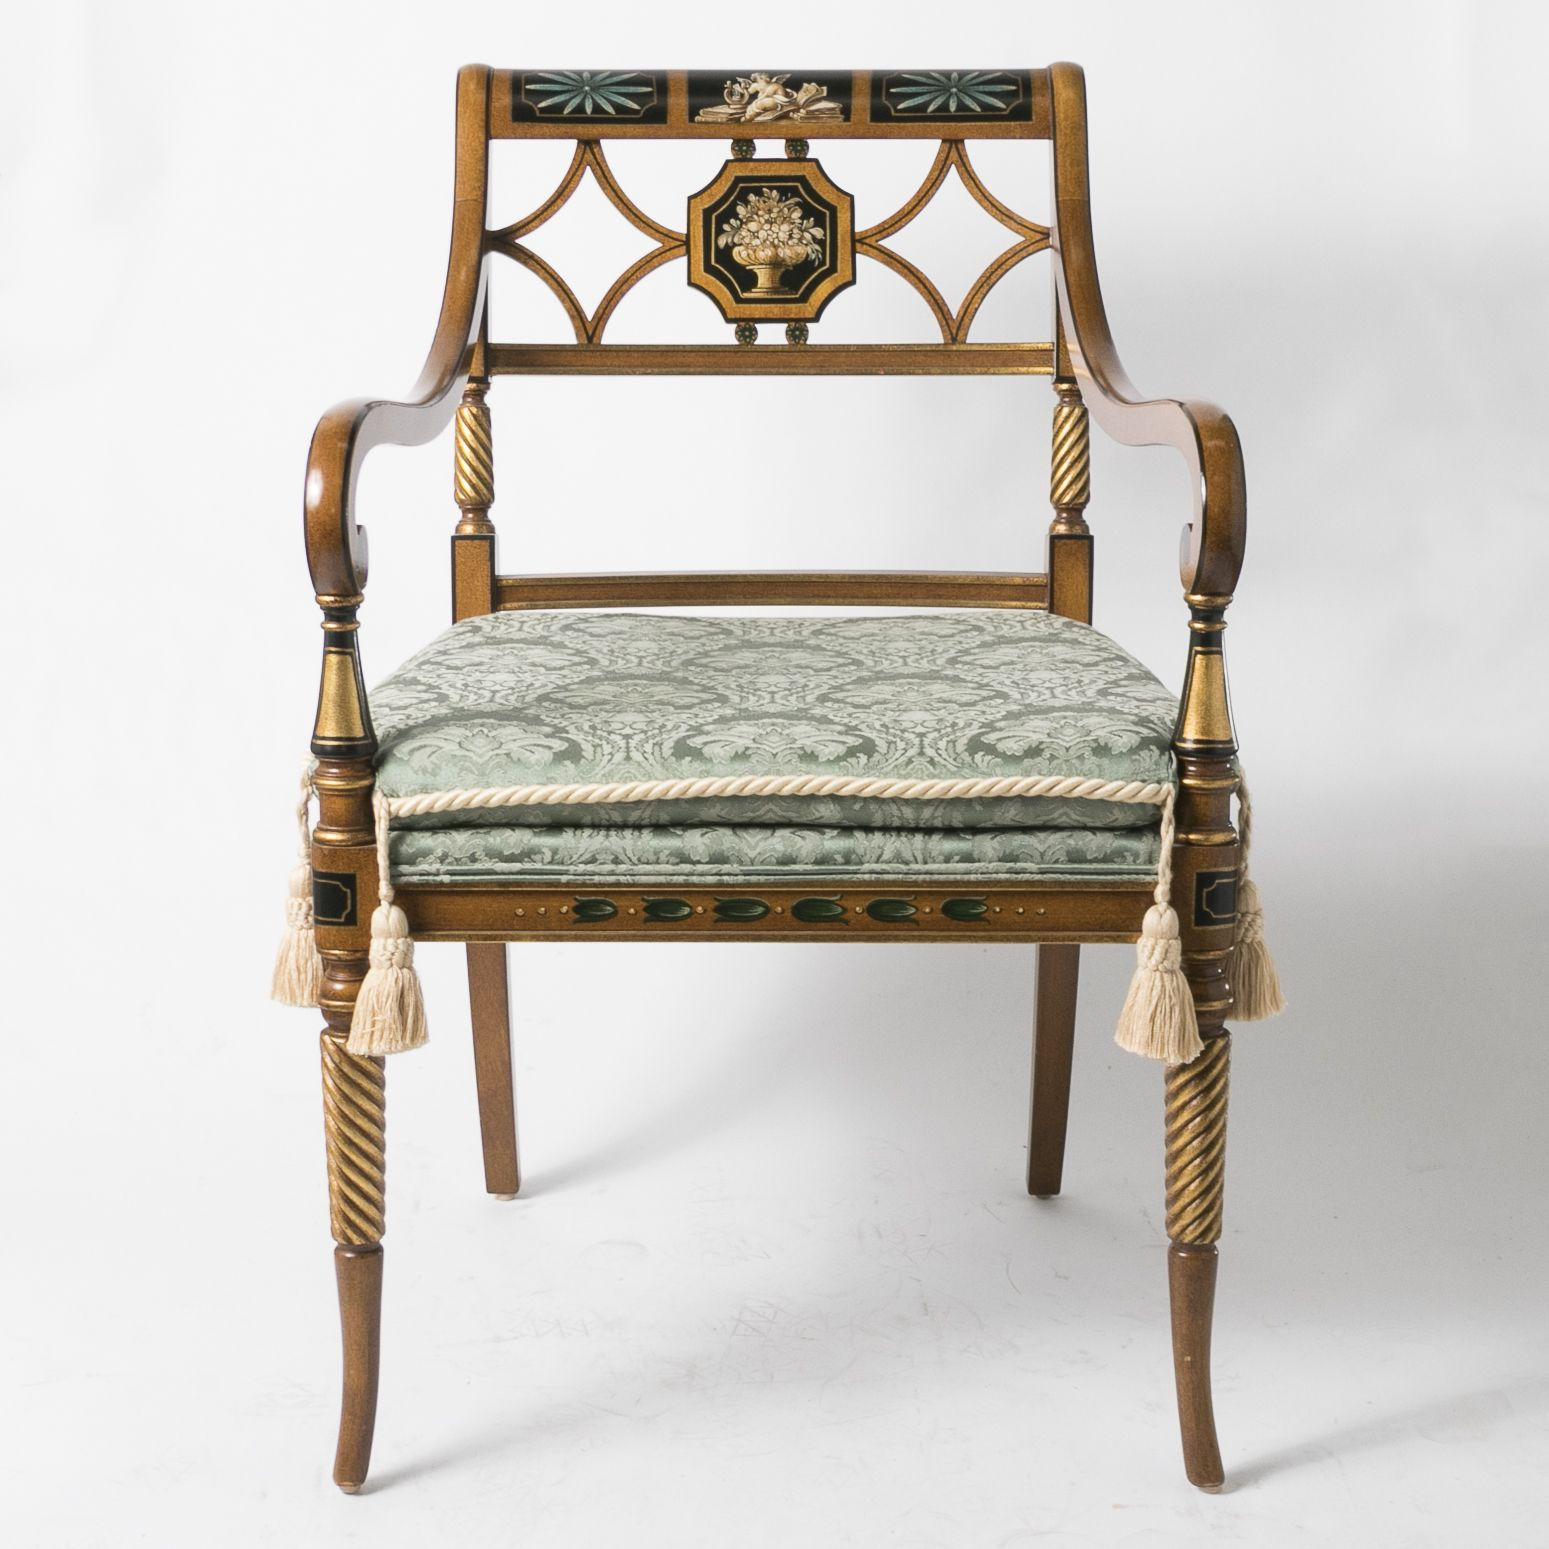 The best selection of consignment furniture in Columbus, Ohio. Shop our  gently used furniture; antique, vintage, and previously owned furniture; - New Arrivals Grand View Mercantile Pinterest Consignment